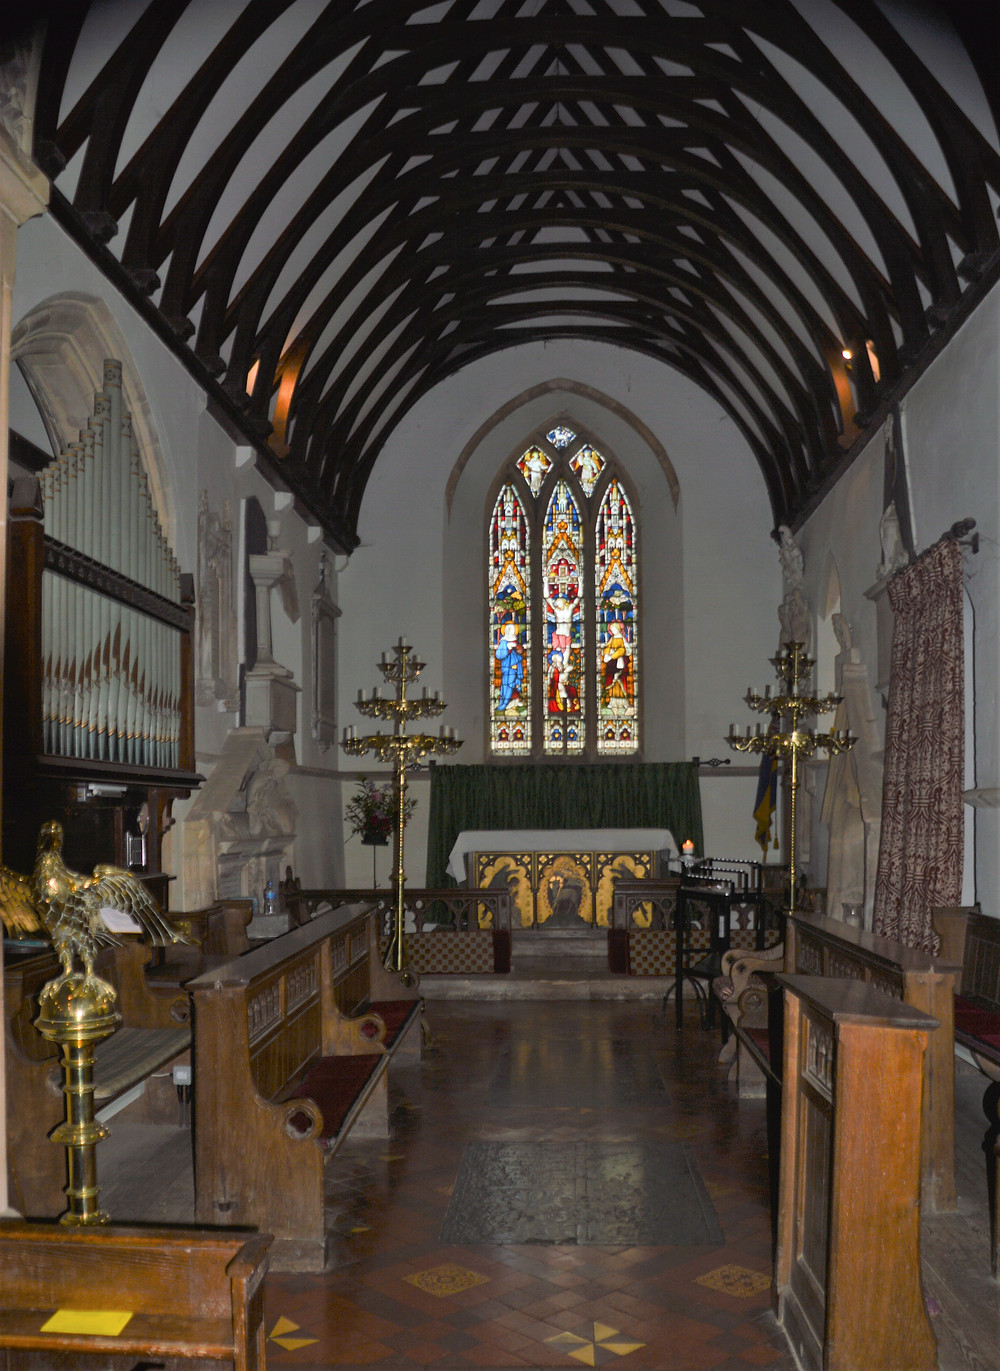 Interior and high altar of Church of St Peter's in Upper Slaughter of the Cotswolds